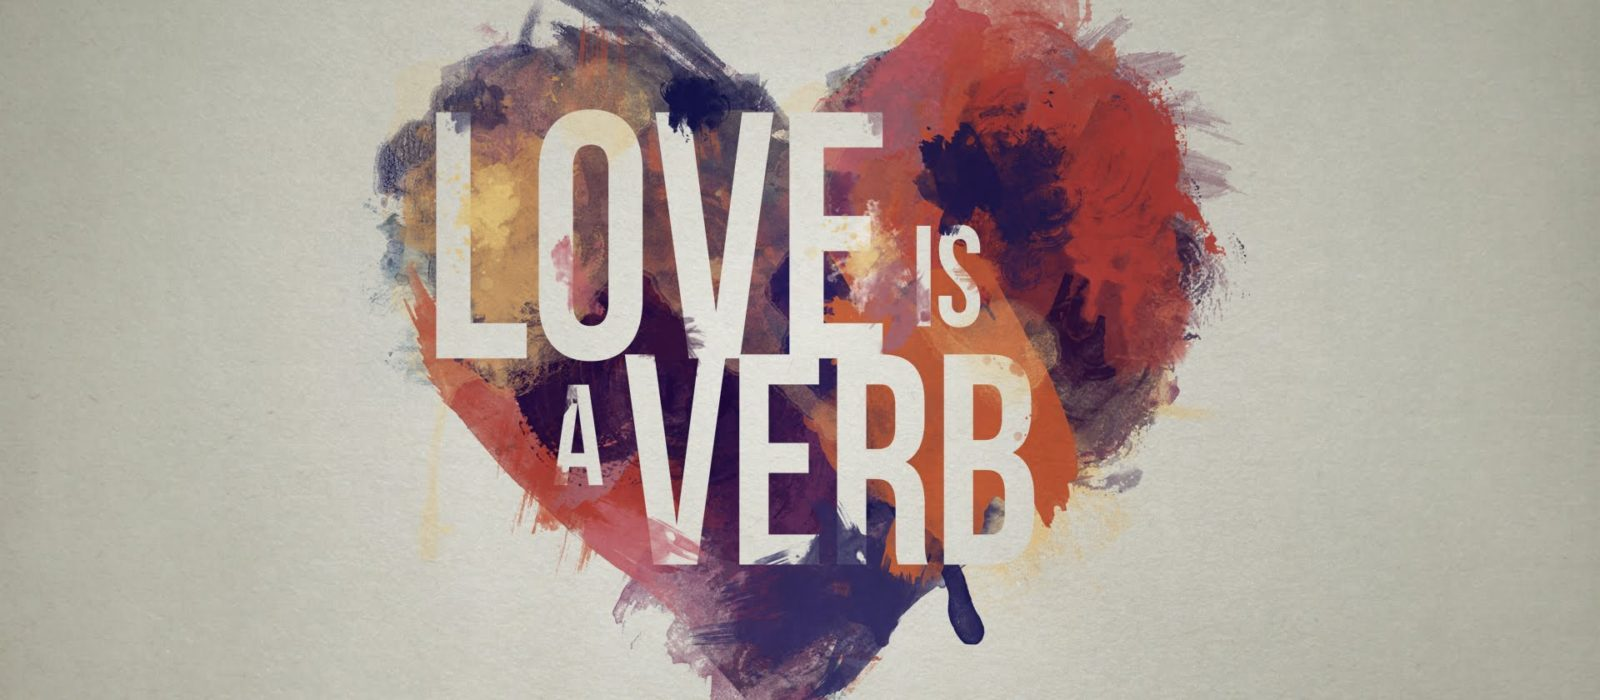 Love, is a VERB. Don't get it twisted.